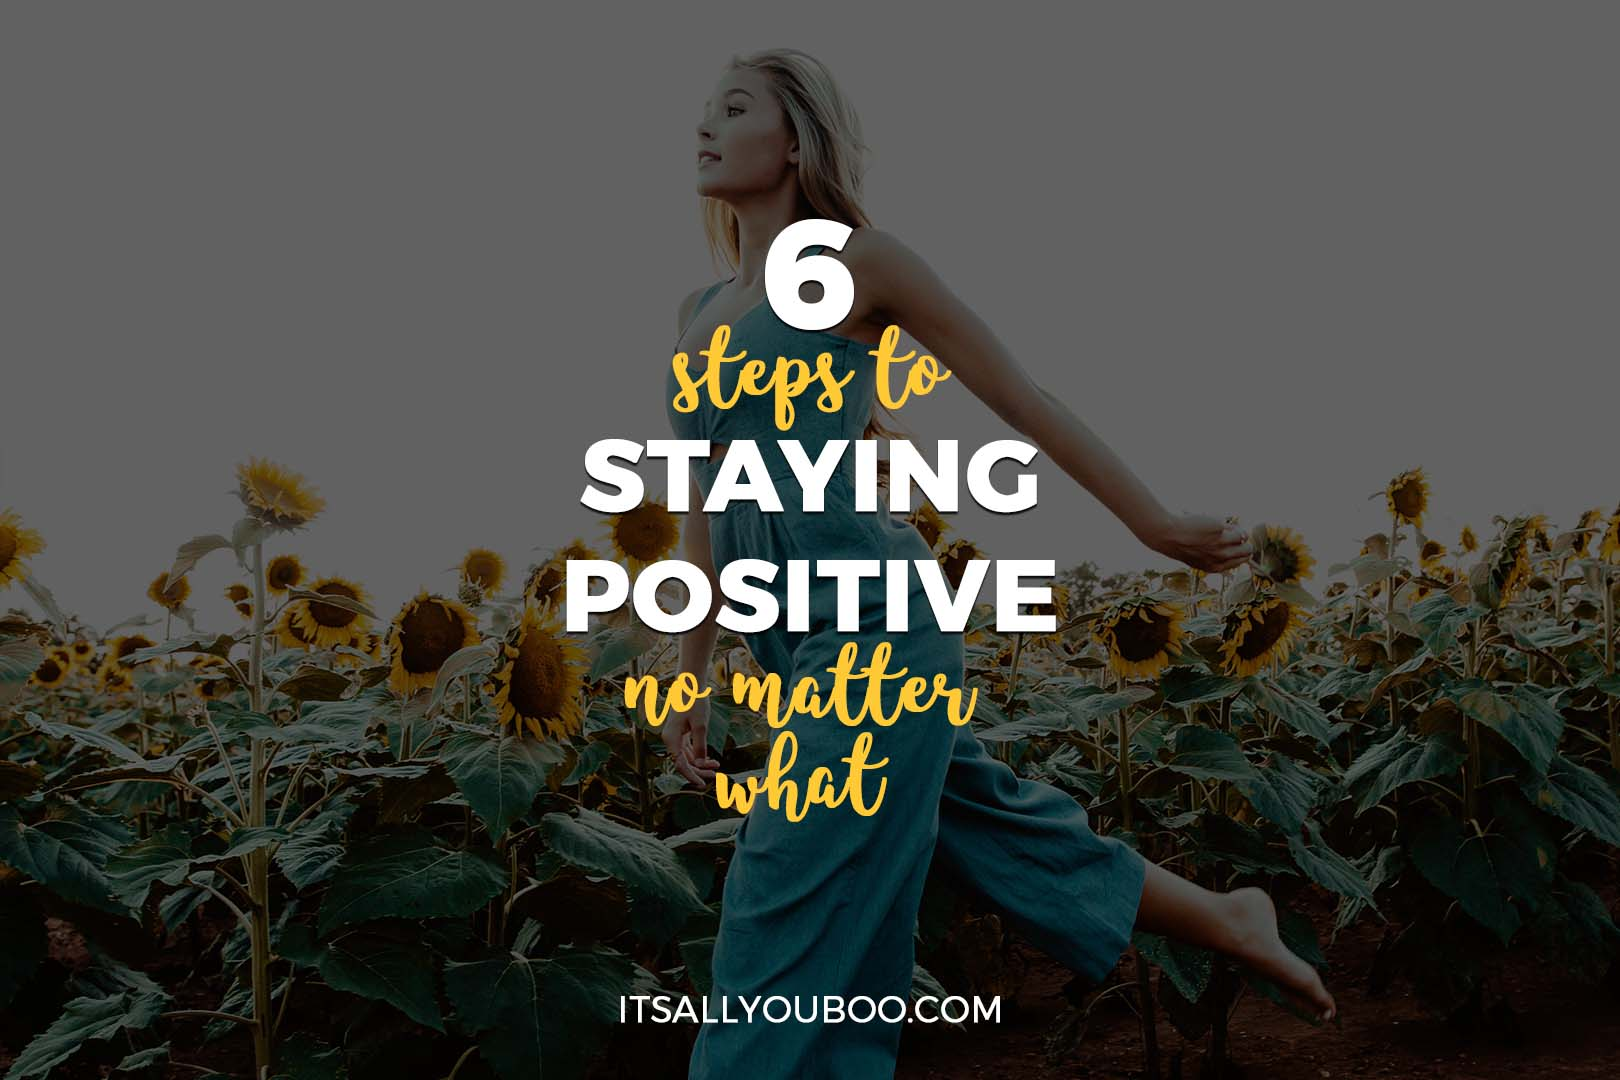 6 Steps to Staying Positive No Matter What